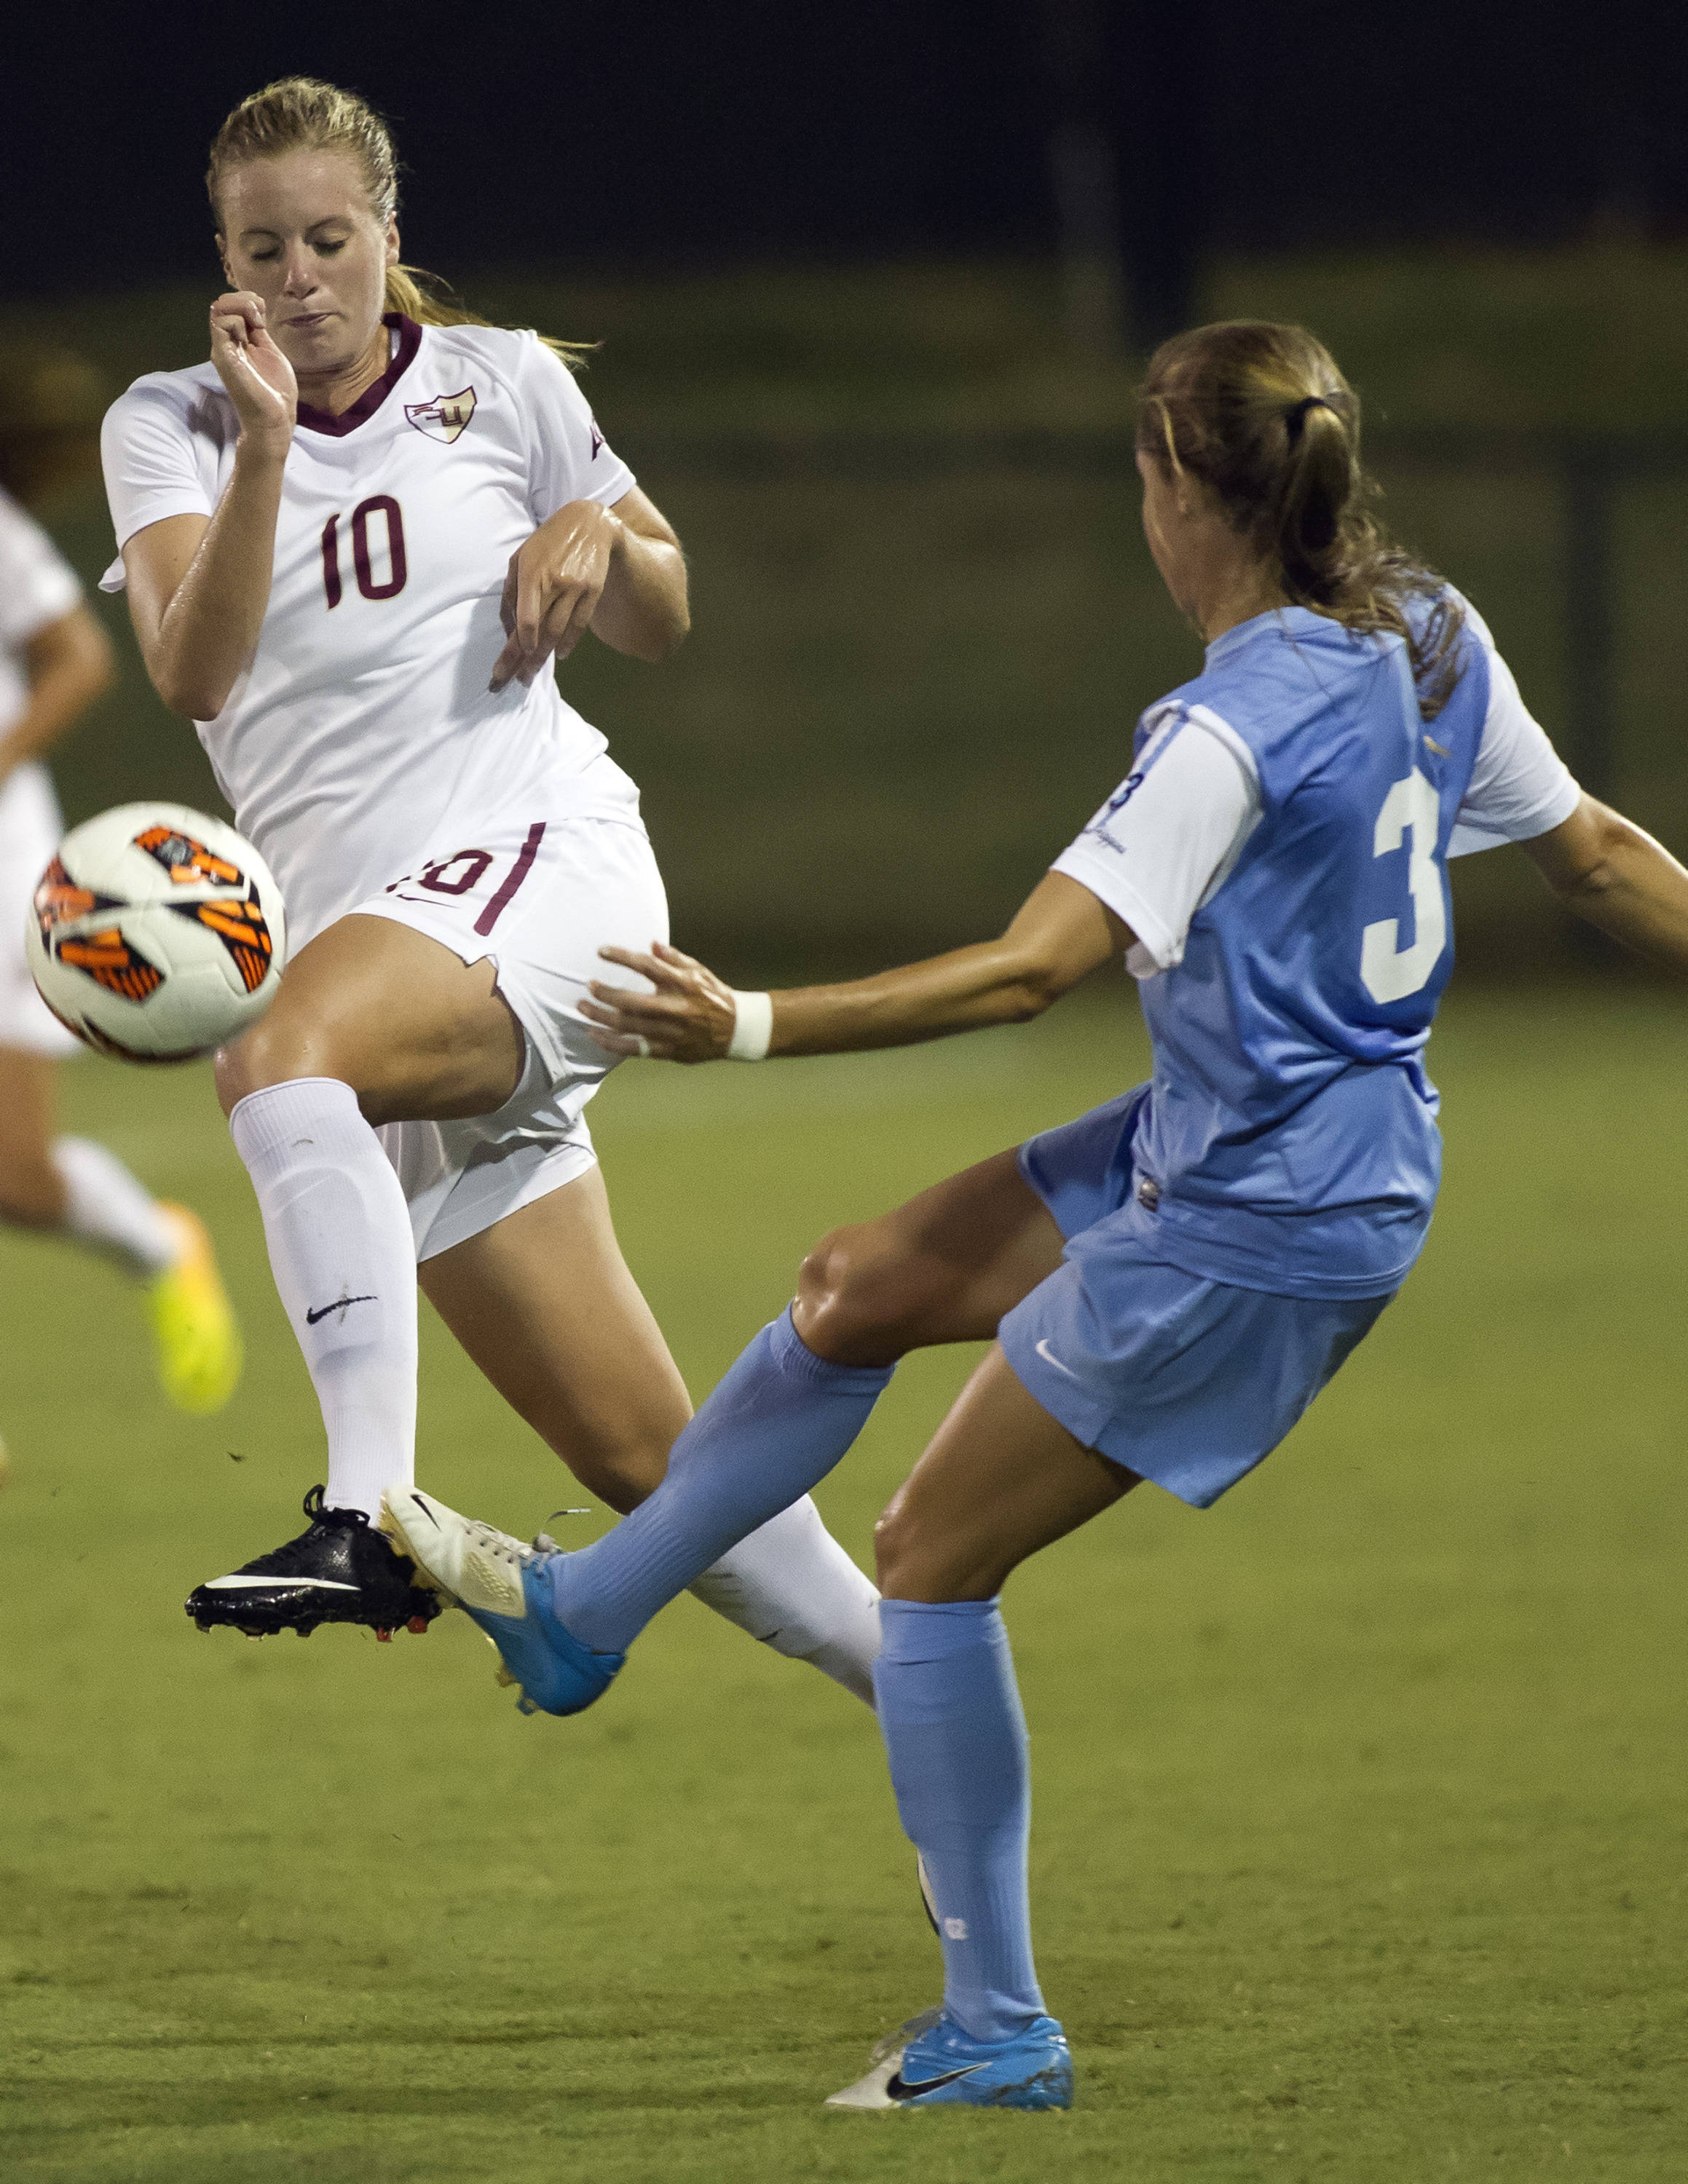 Berglind Thorvaldsdottir, FSU vs North Carolina,  9-18-13, (Photo by Steve Musco)